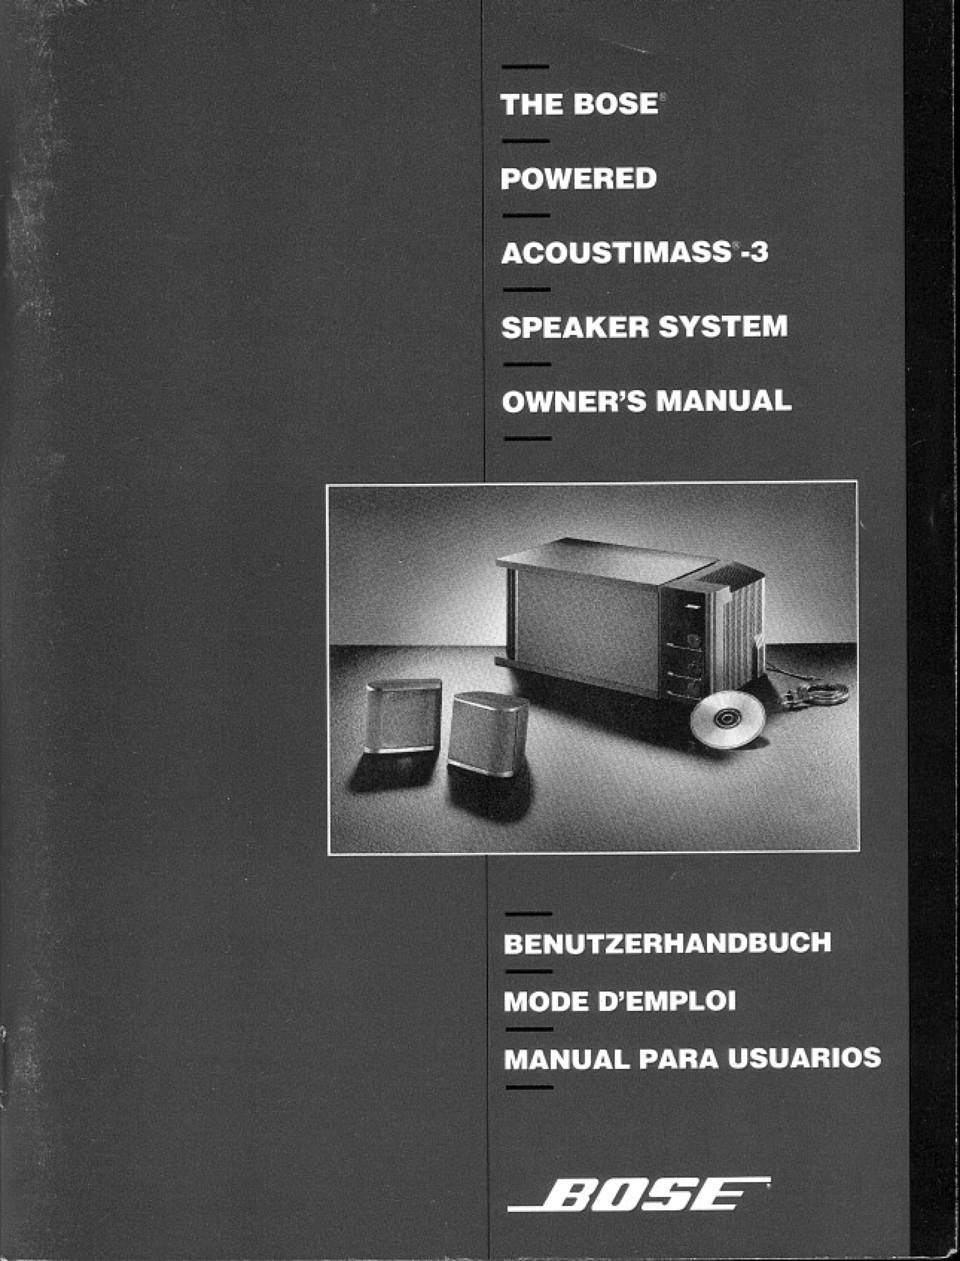 Bose Powered Acoustimass 3 Speaker System Sold From 1991 To 1994 Series V Black Start Reading User Manual